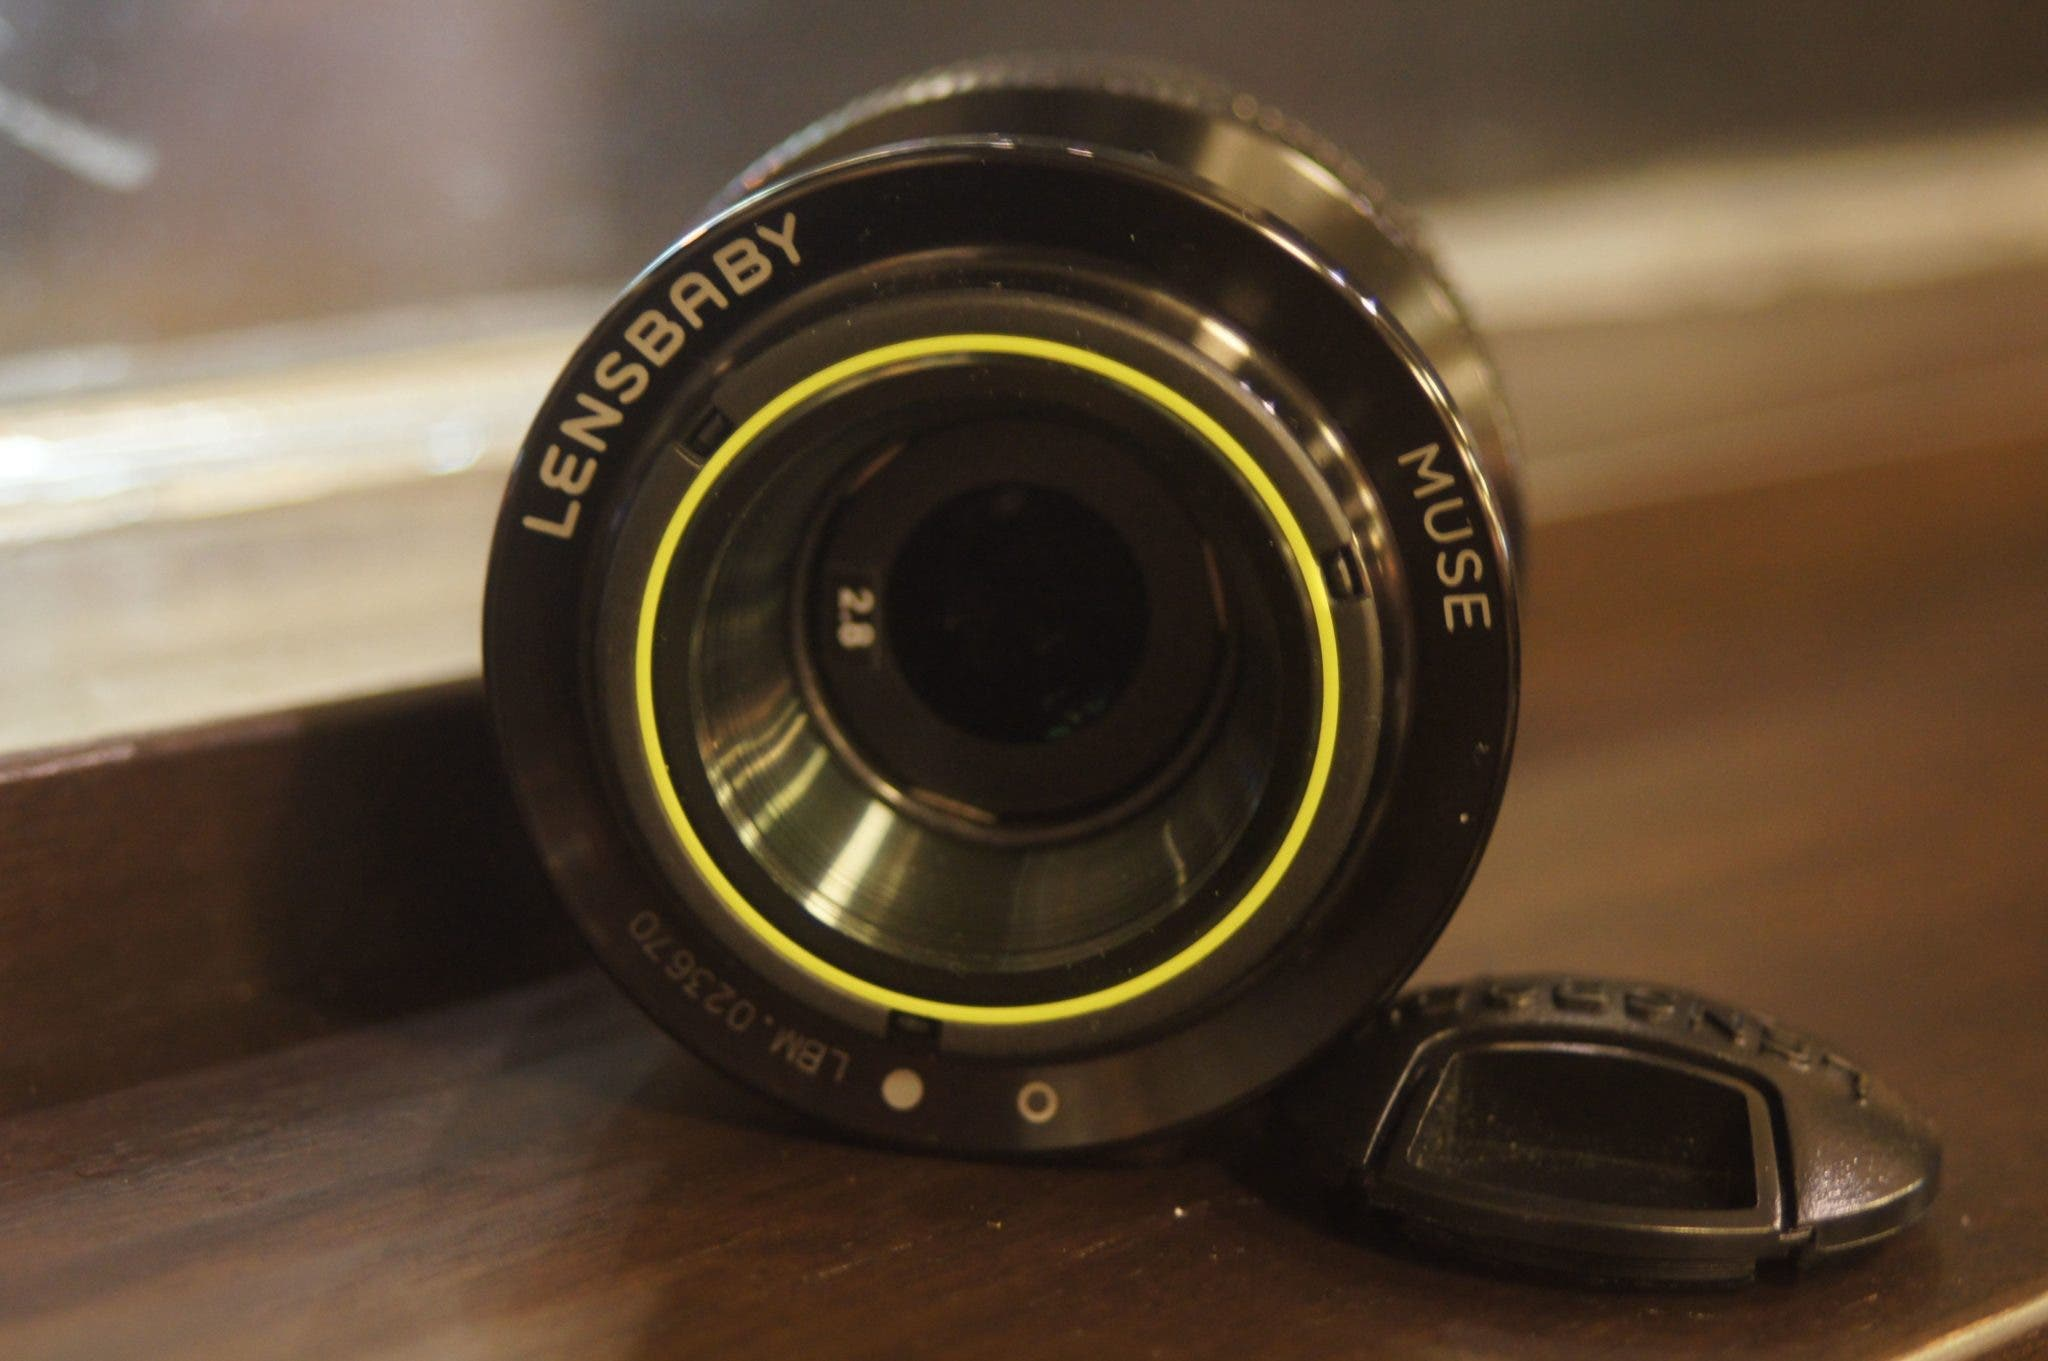 Review: Lensbaby Muse (Sony Alpha A/Minolta Maxxum)